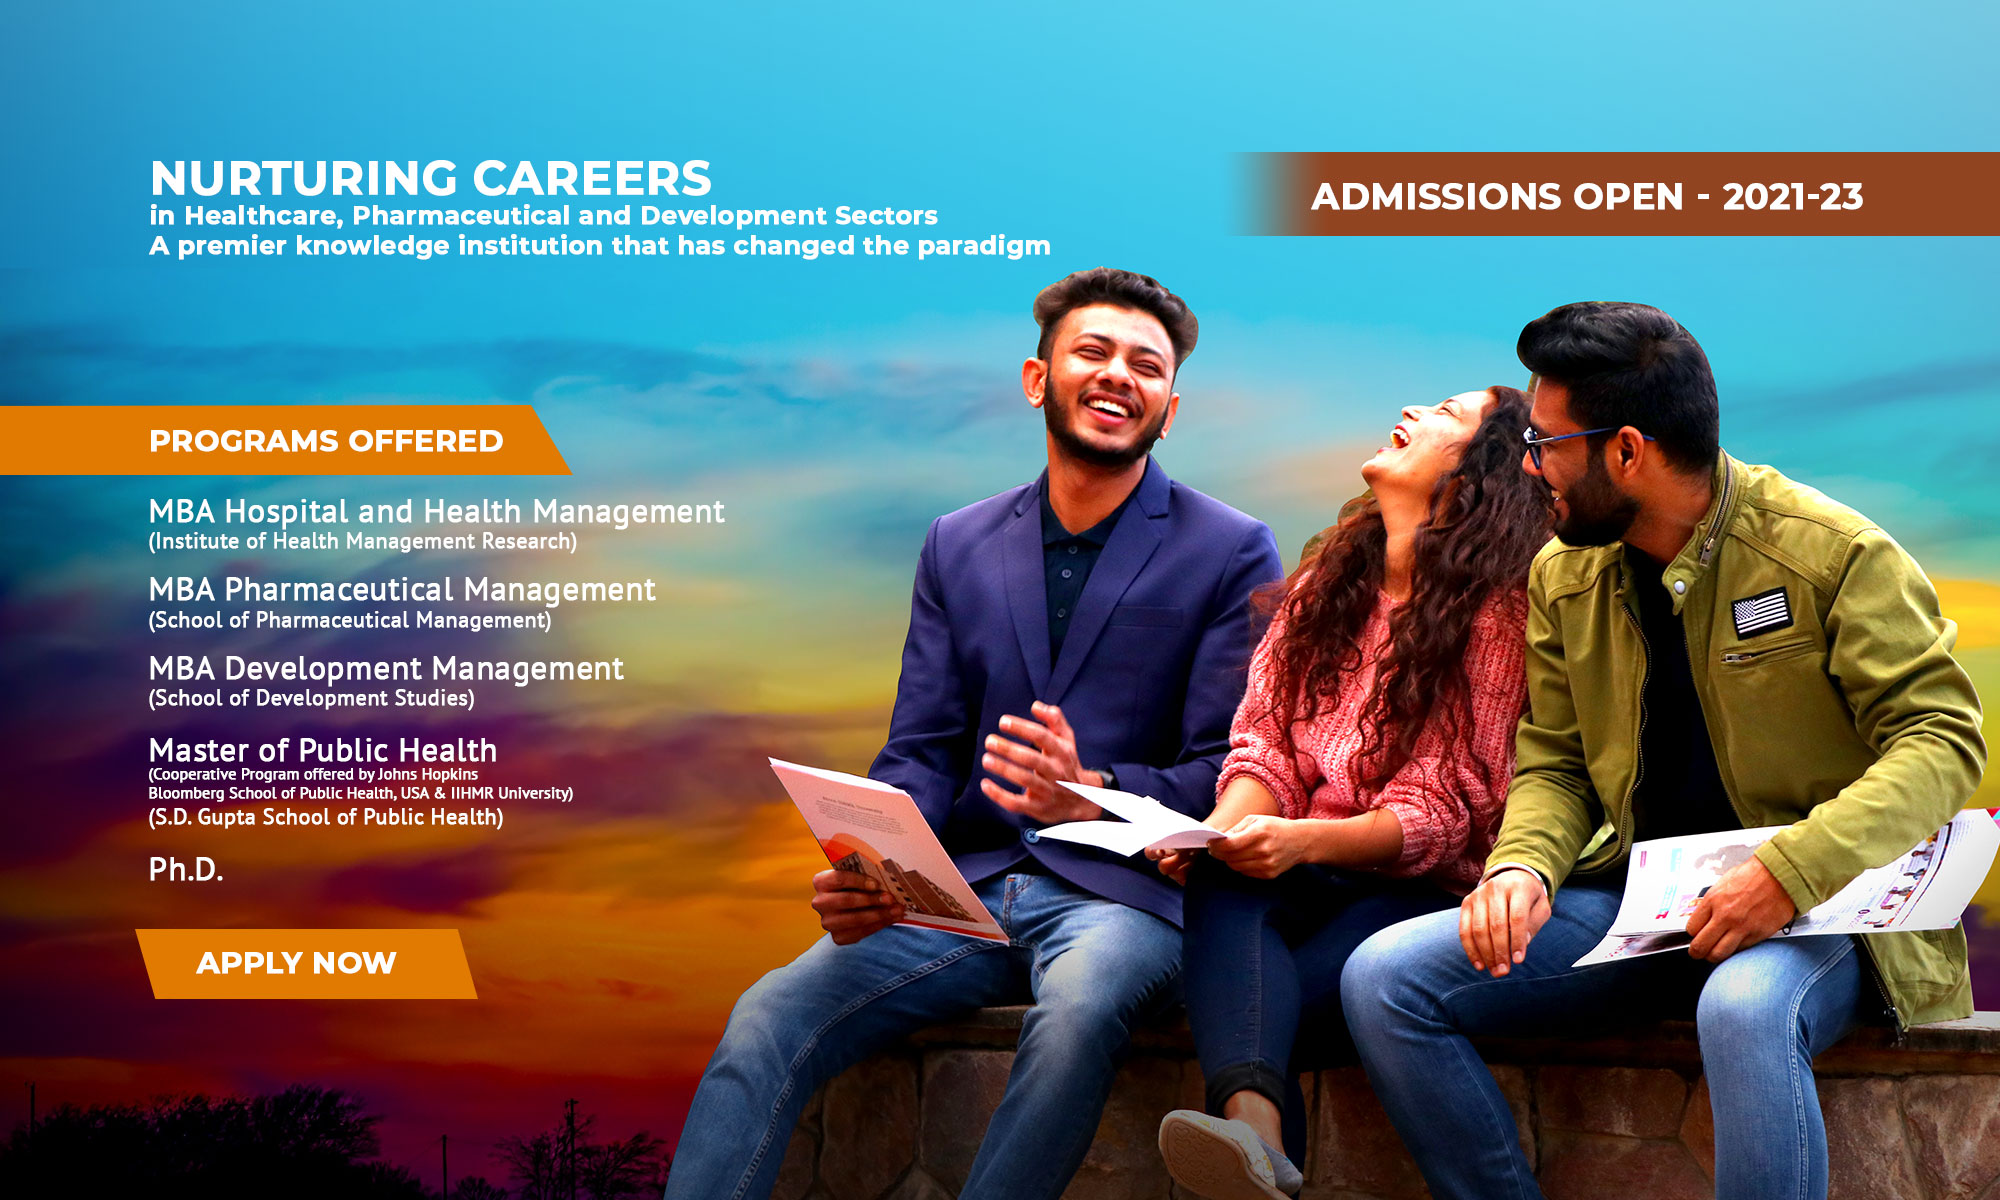 Admission open 2021-2023